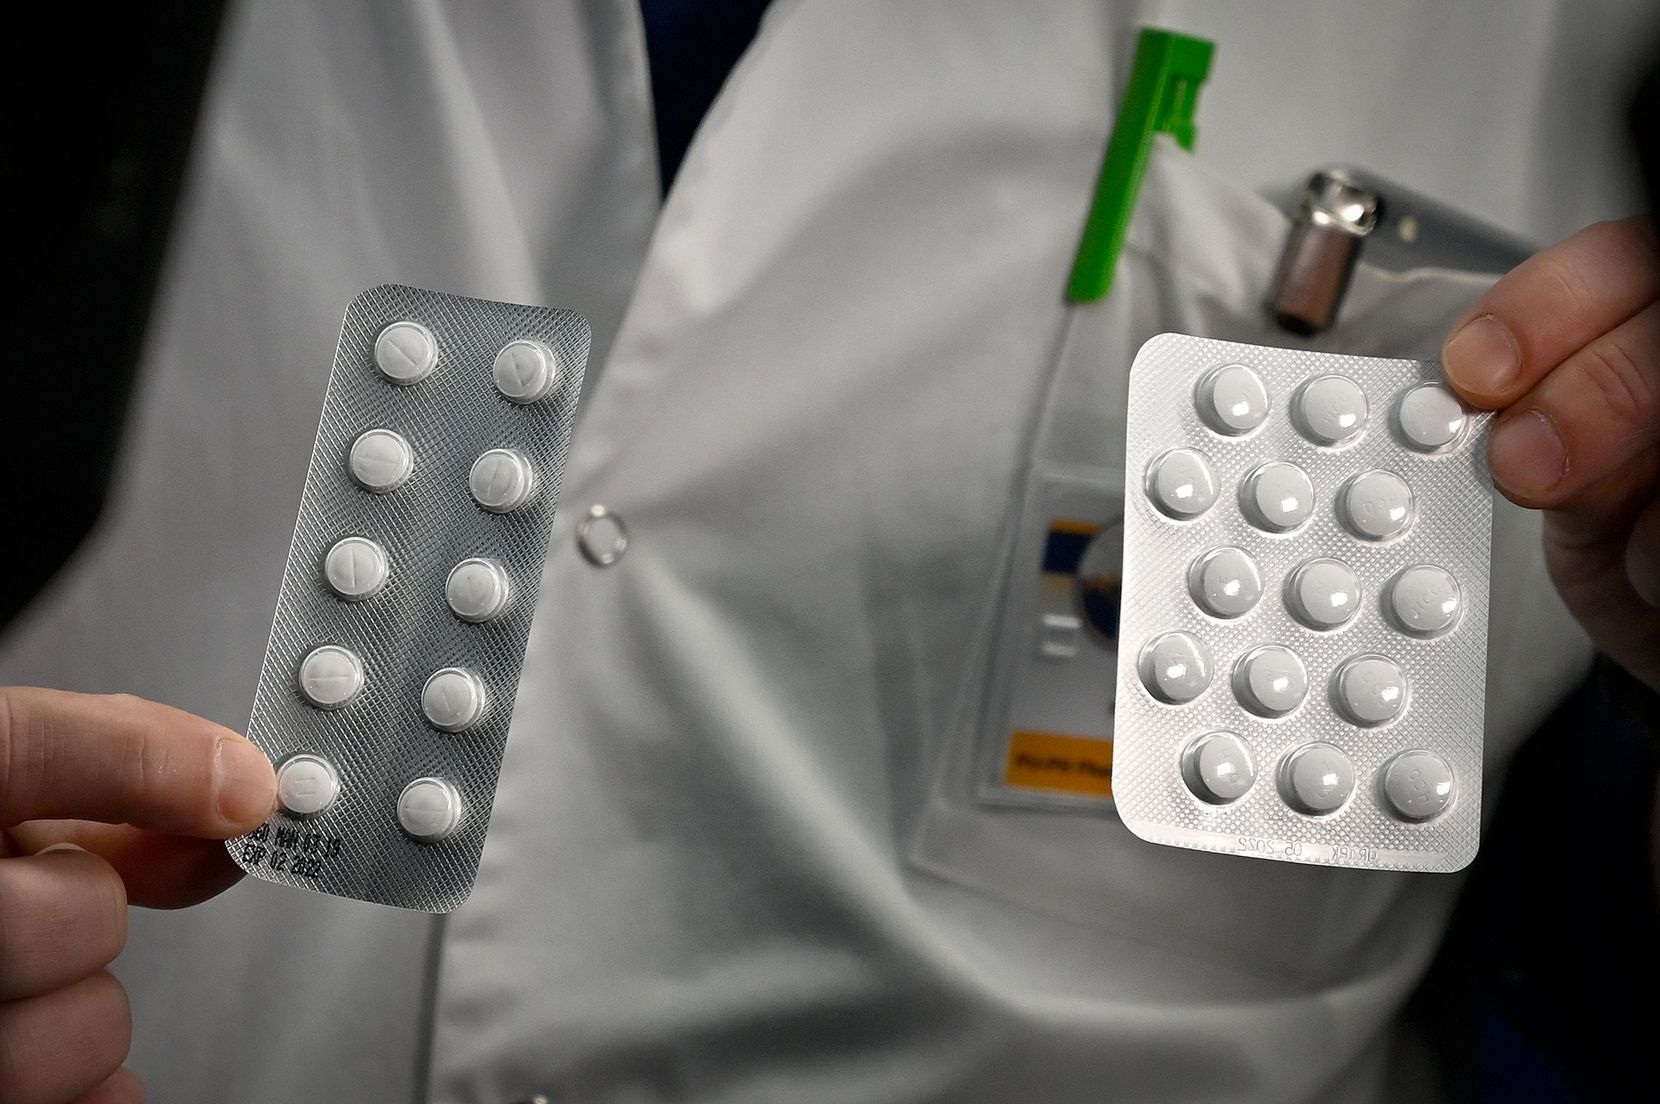 Medical staff at the IHU Mediterranee Infection Institute in Marseille show packets of Nivaquine, tablets containing chloroquine, and Plaqueril, tablets containing hydroxychloroquine. Anecdotal evidence suggests the drugs could help fight COVID-19.